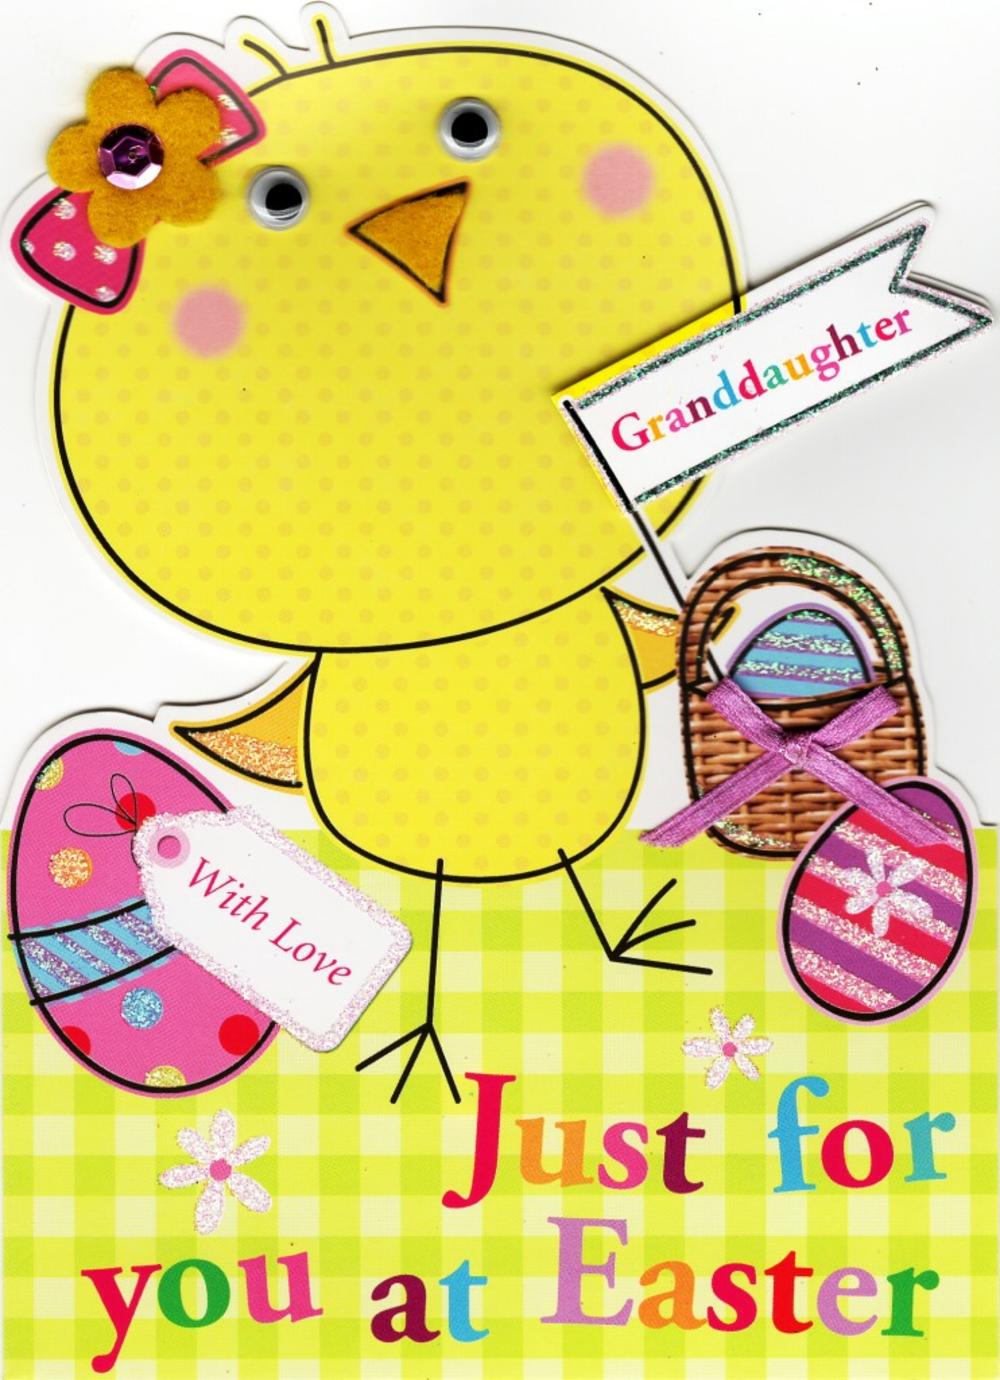 Granddaughter Cute Chick Shaped Easter Greeting Card